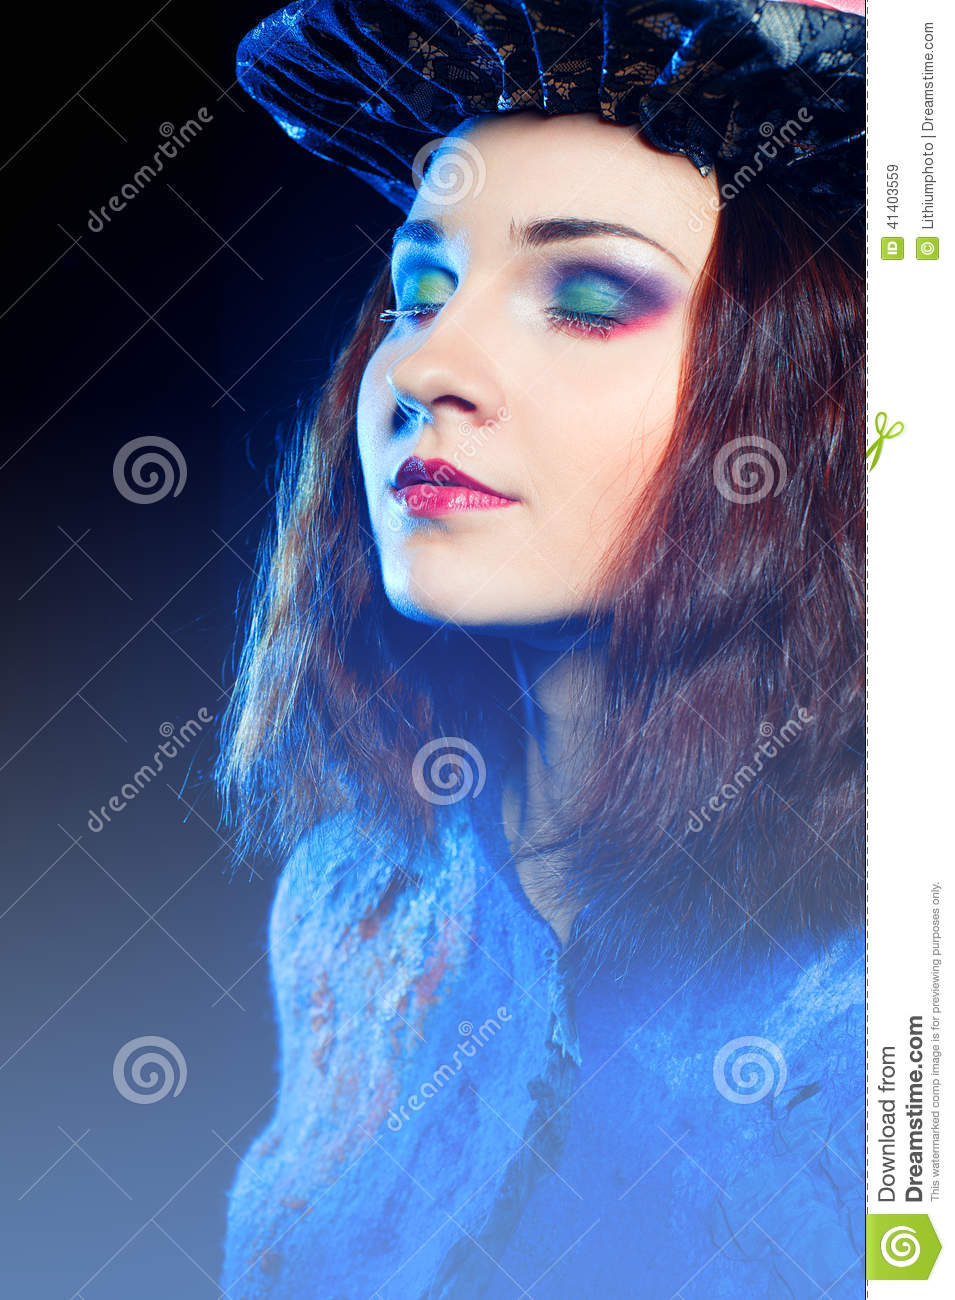 Close-up portrait of young woman in the similitude of the Hatter